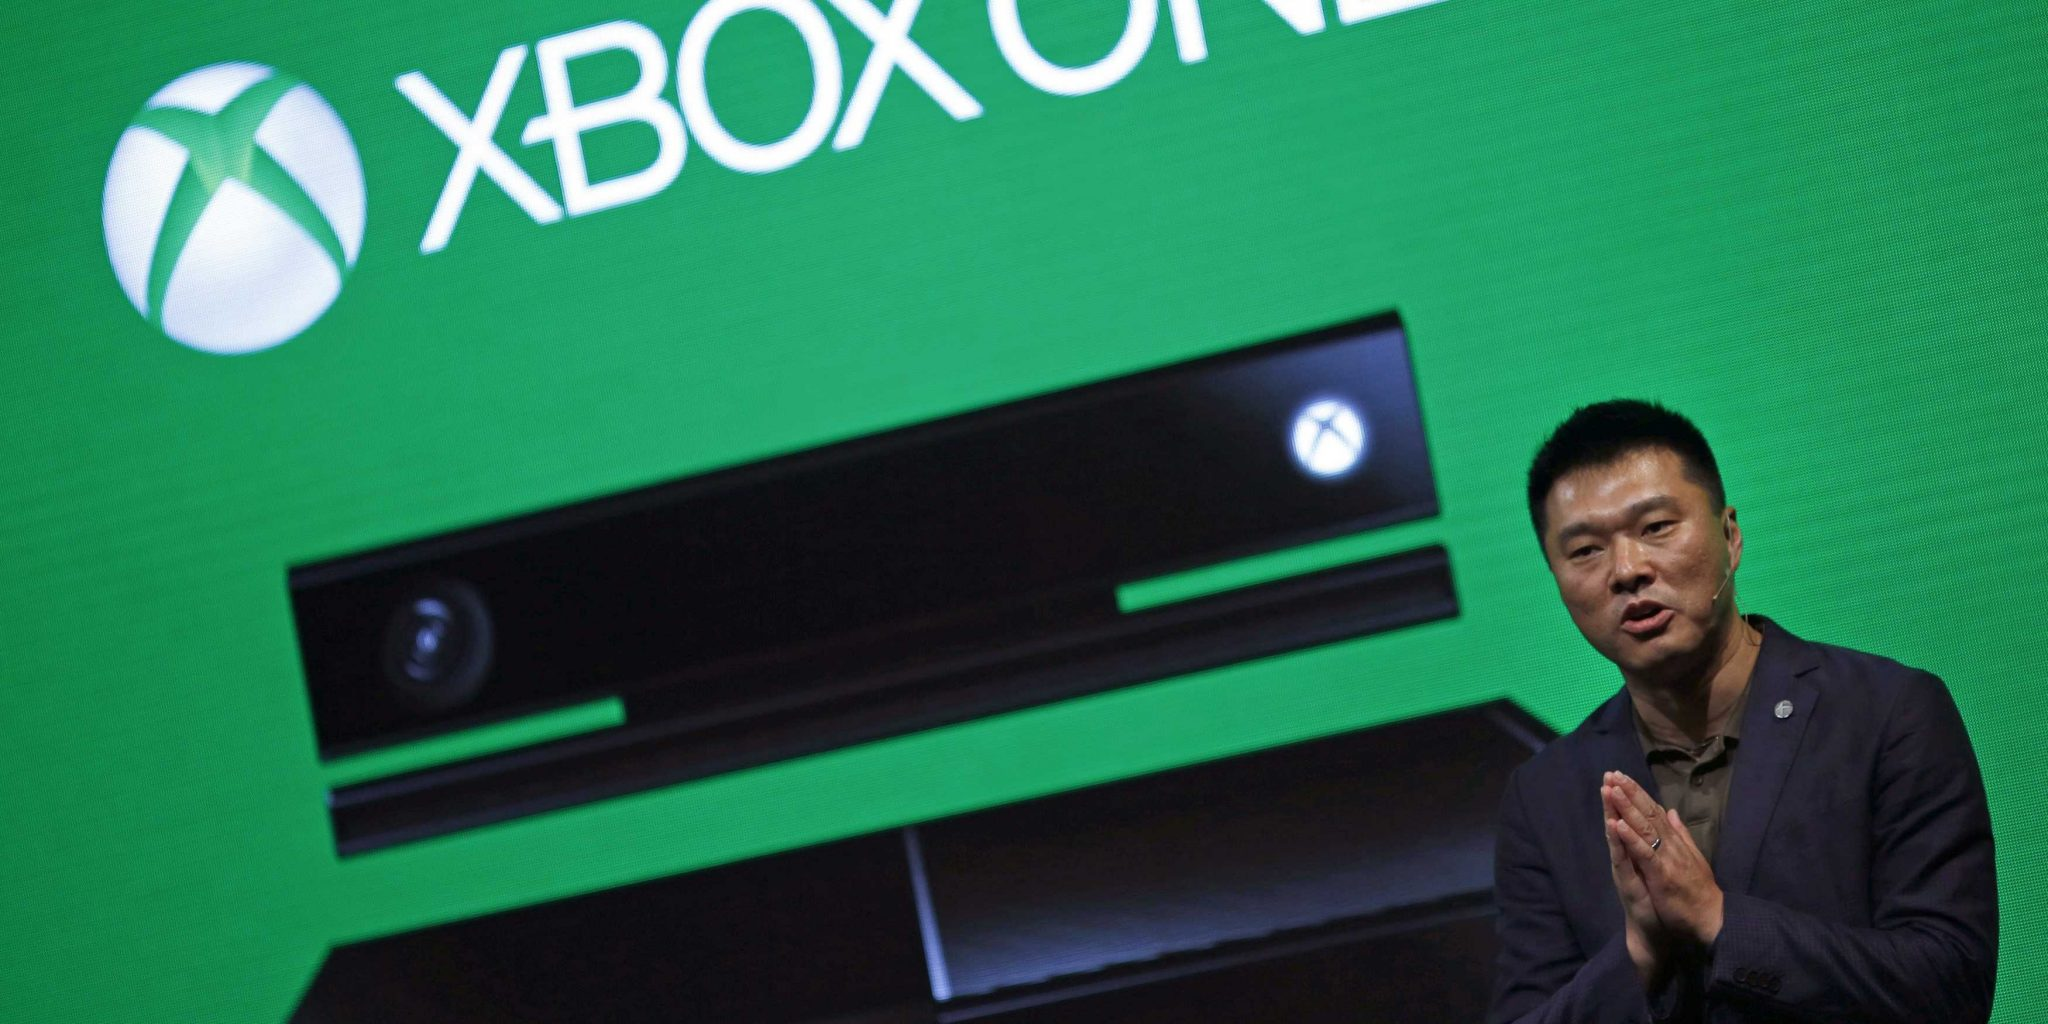 china-is-not-impressed-with-the-xbox-one